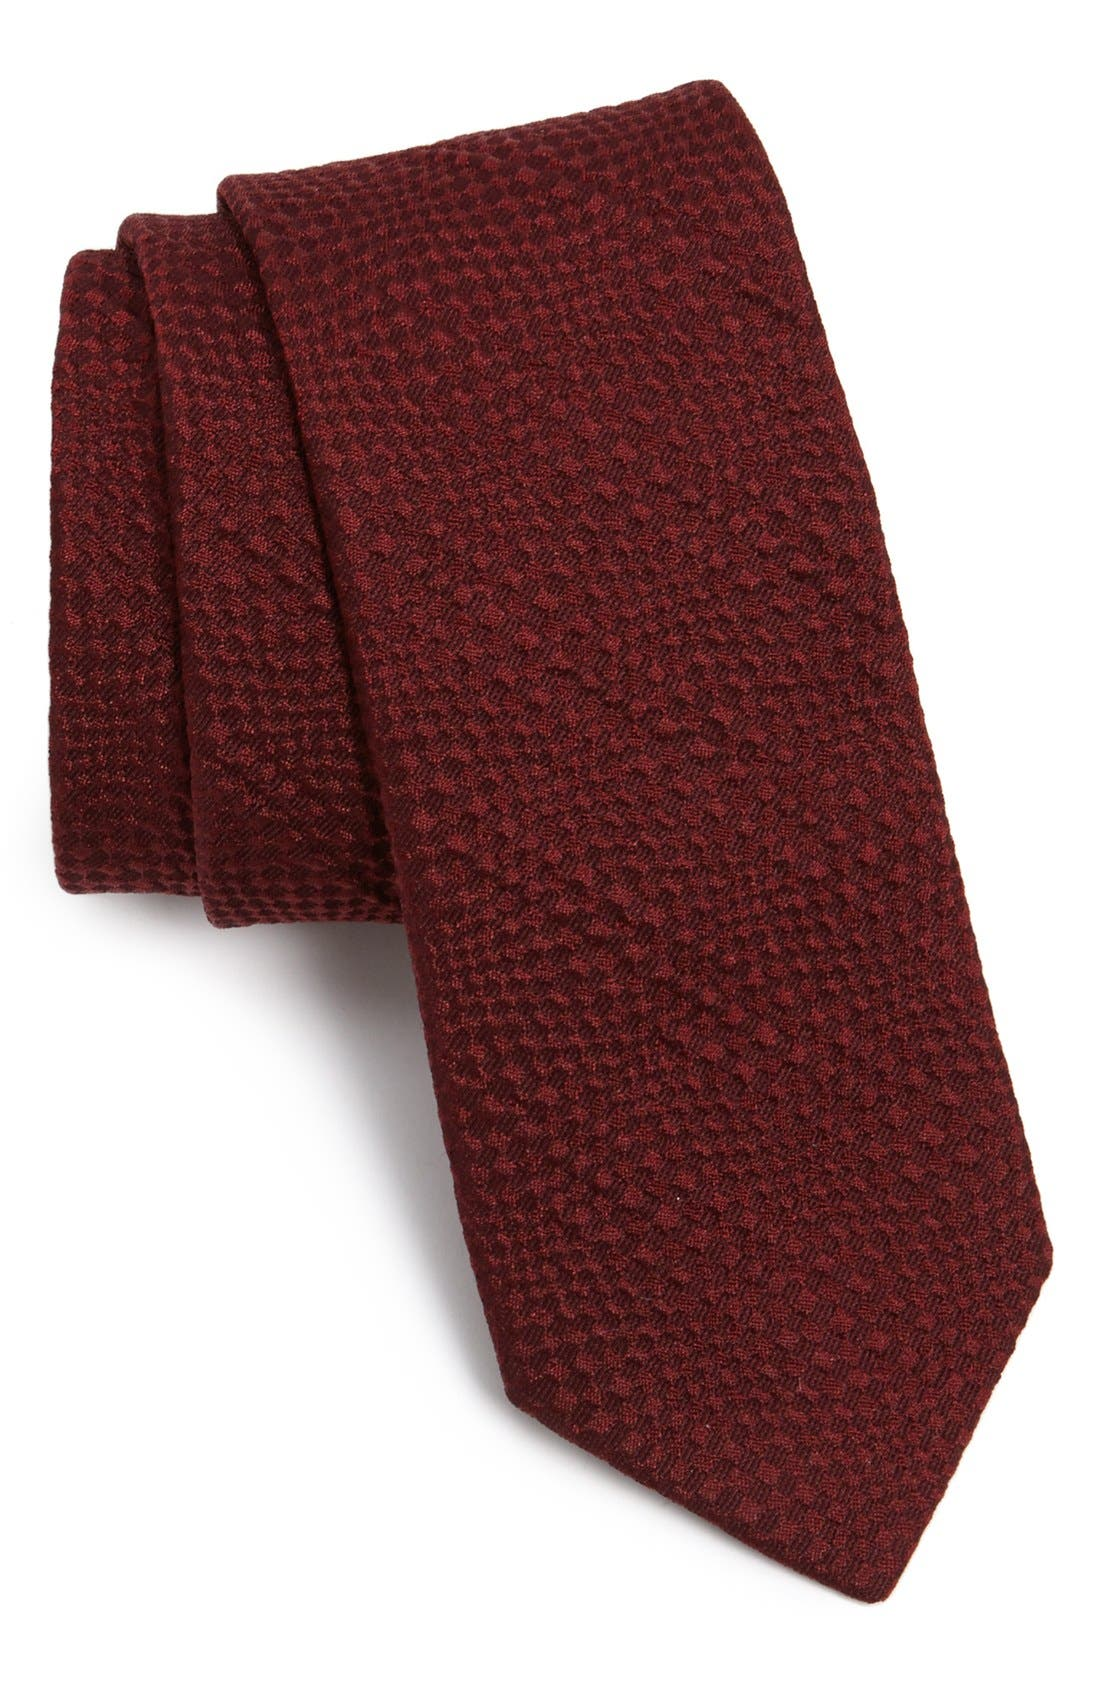 Alternate Image 1 Selected - Lanvin Textured Woven Tie